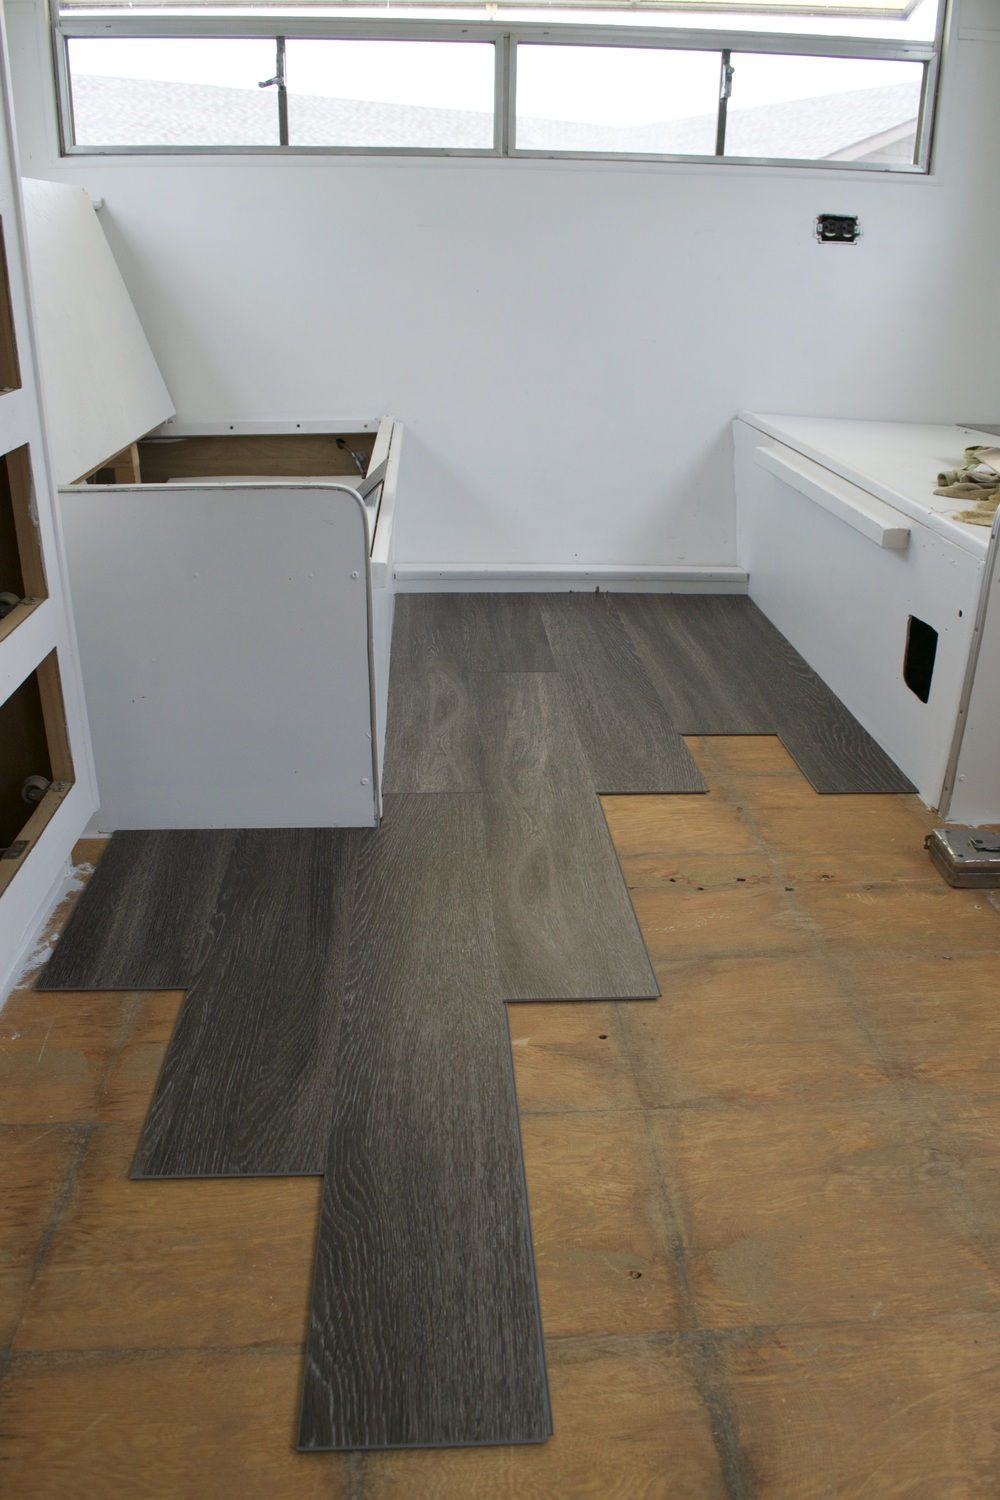 Vinyl Flooring Installation : Reasons to install vinyl plank flooring in your trailer or